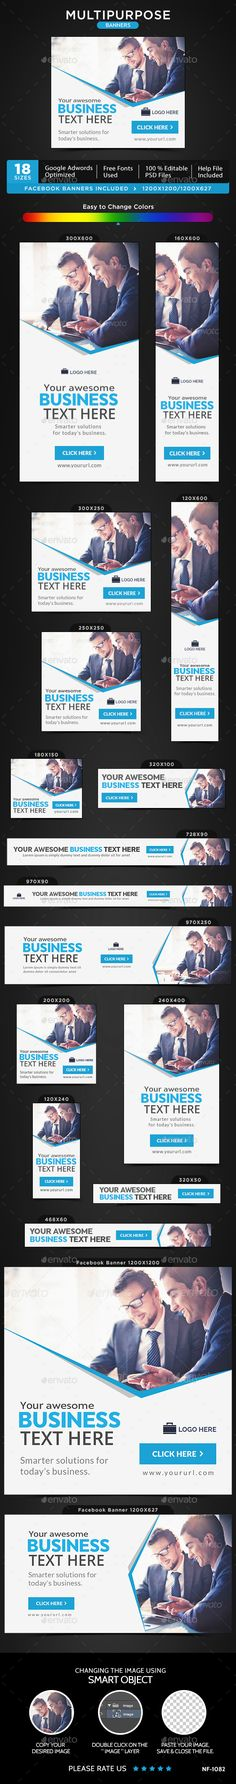 Multipurpose Web Banners Template PSD. Download here: http://graphicriver.net/item/multipurpose-banners/15009574?ref=ksioks